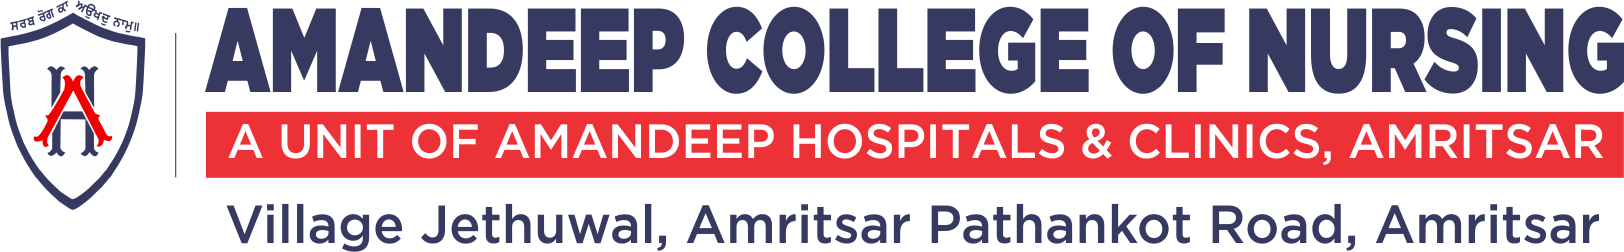 Amandeep College of Nursing - Amritsar Image